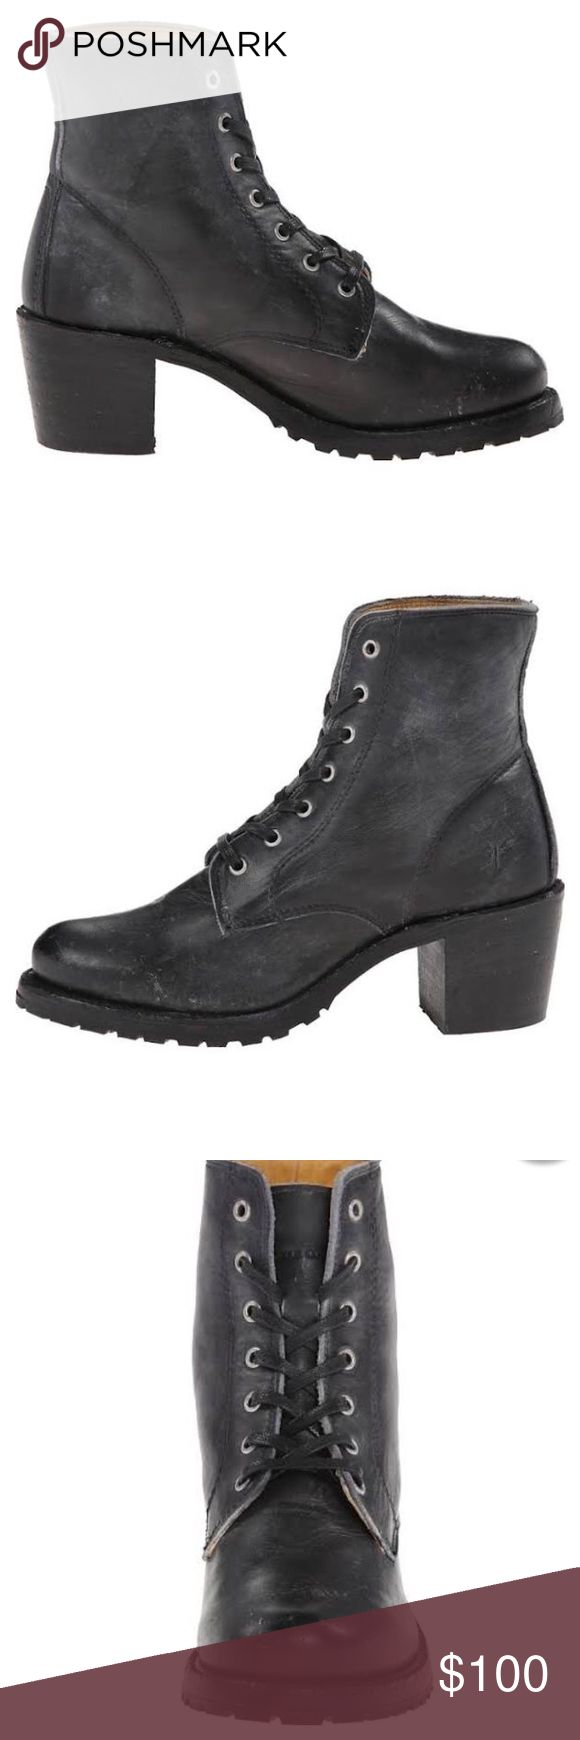 Frye Black Lace up Boot Short, gently worn, pics are not exact match but very close. Frye Shoes Ankle Boots & Booties